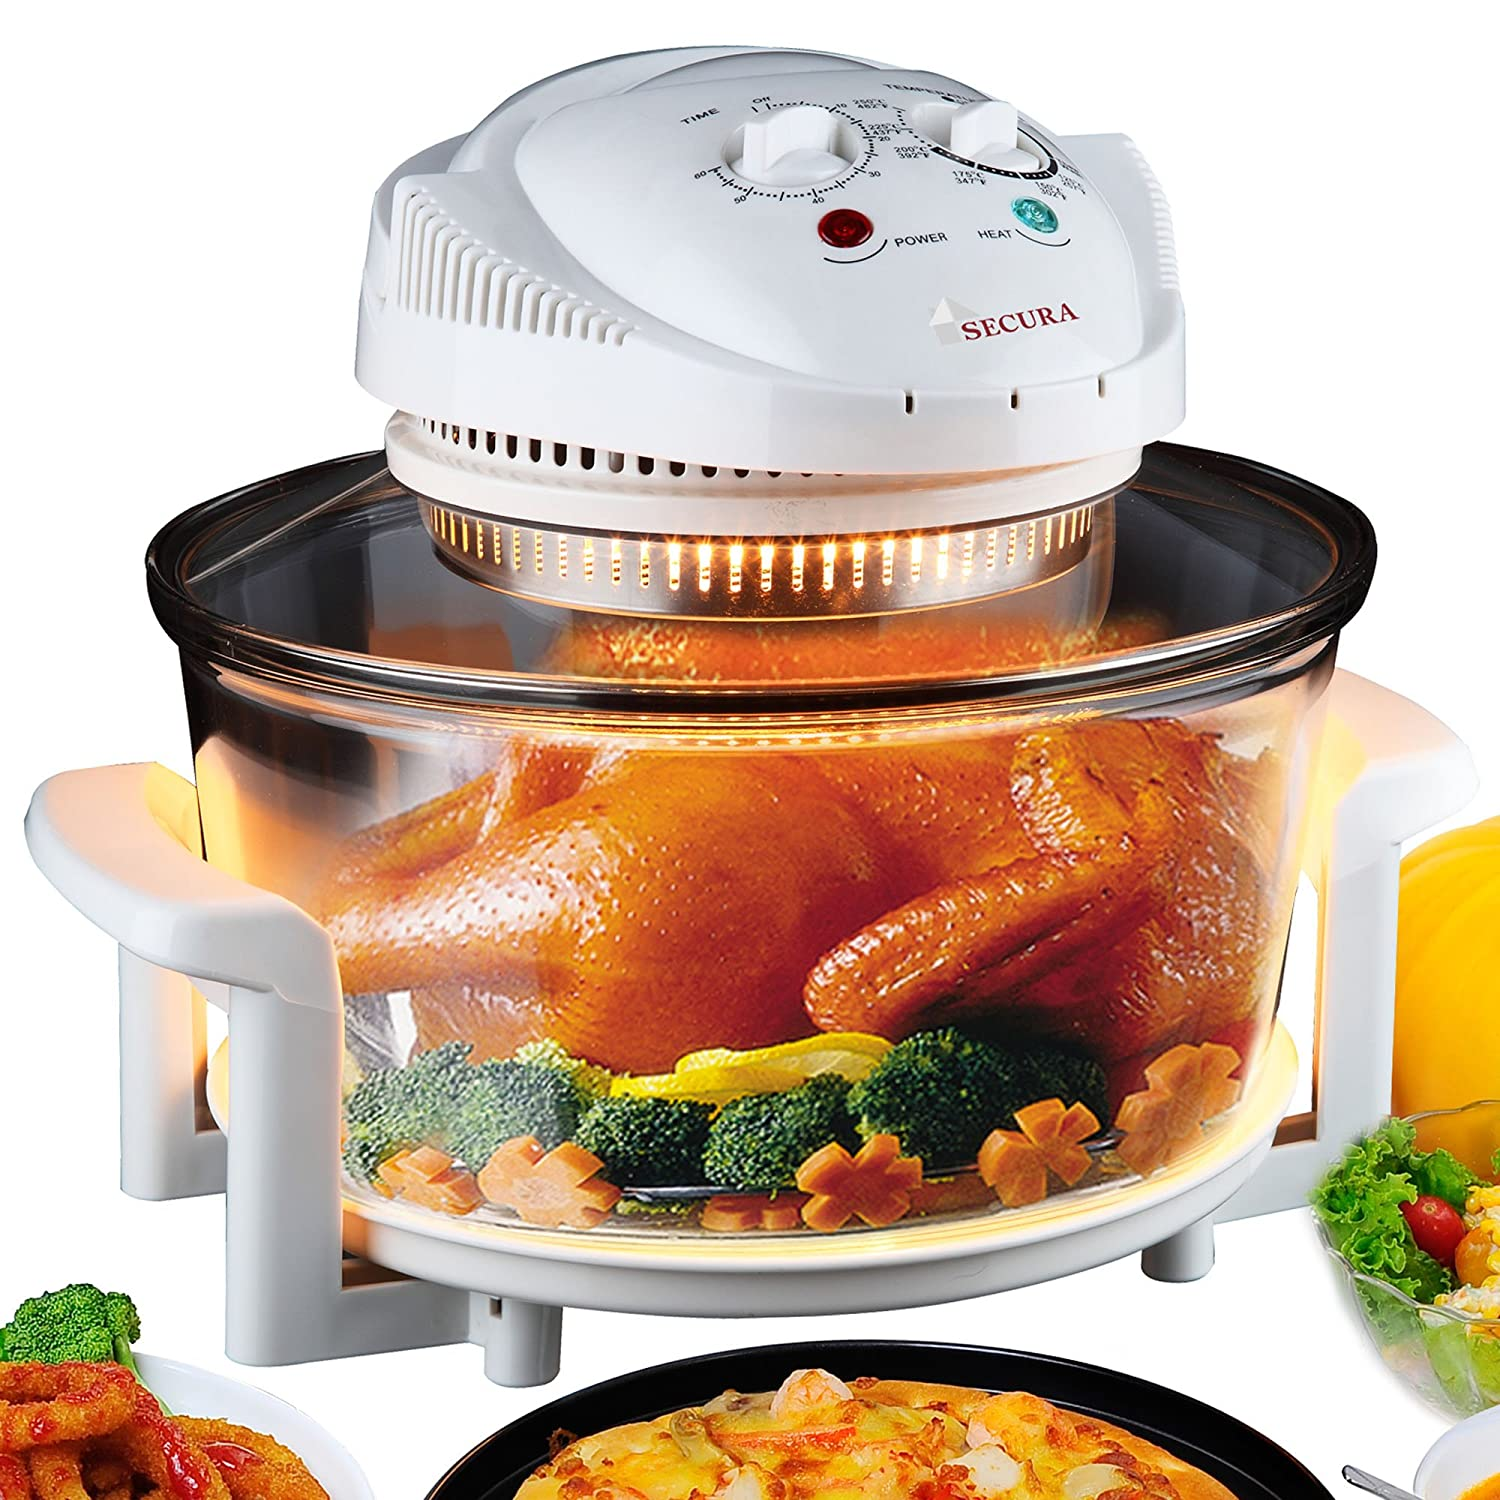 Best Halogen Infrared Convection Oven Reviews For